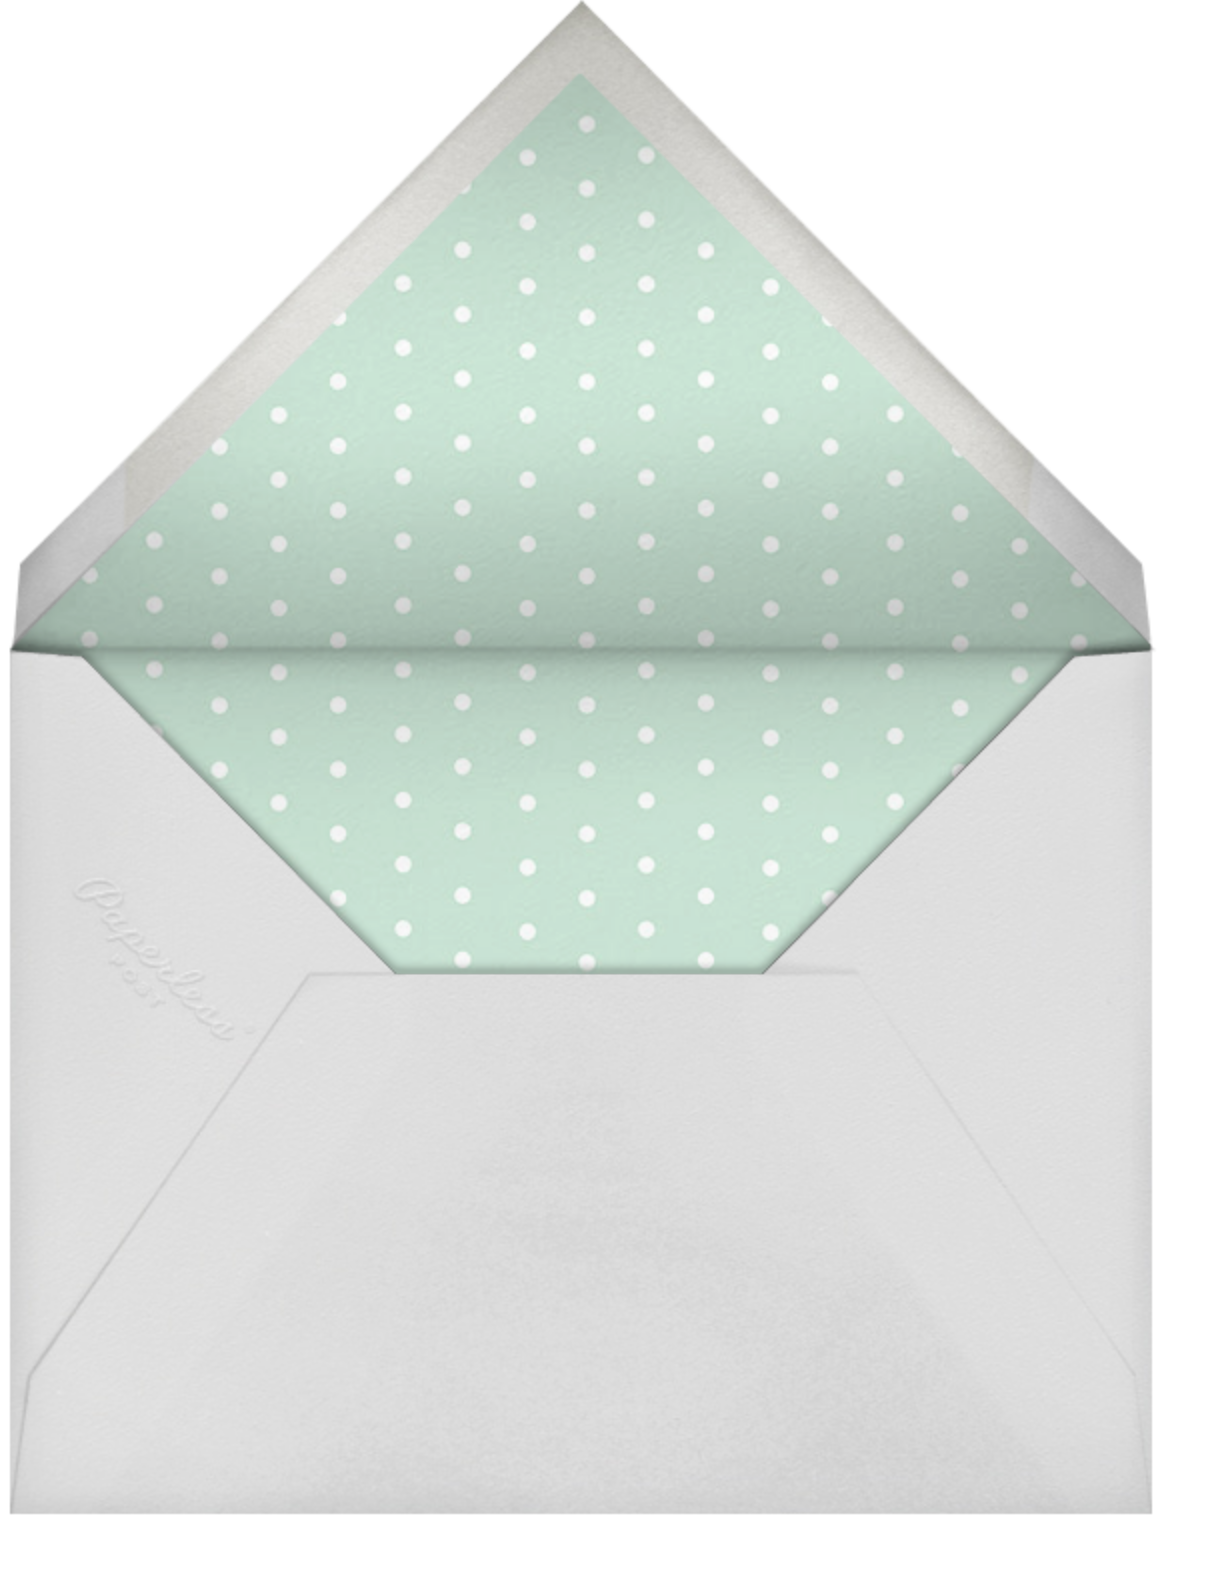 Hot Air Balloon Cluster - Mint/Coral - Paperless Post - Save the date - envelope back